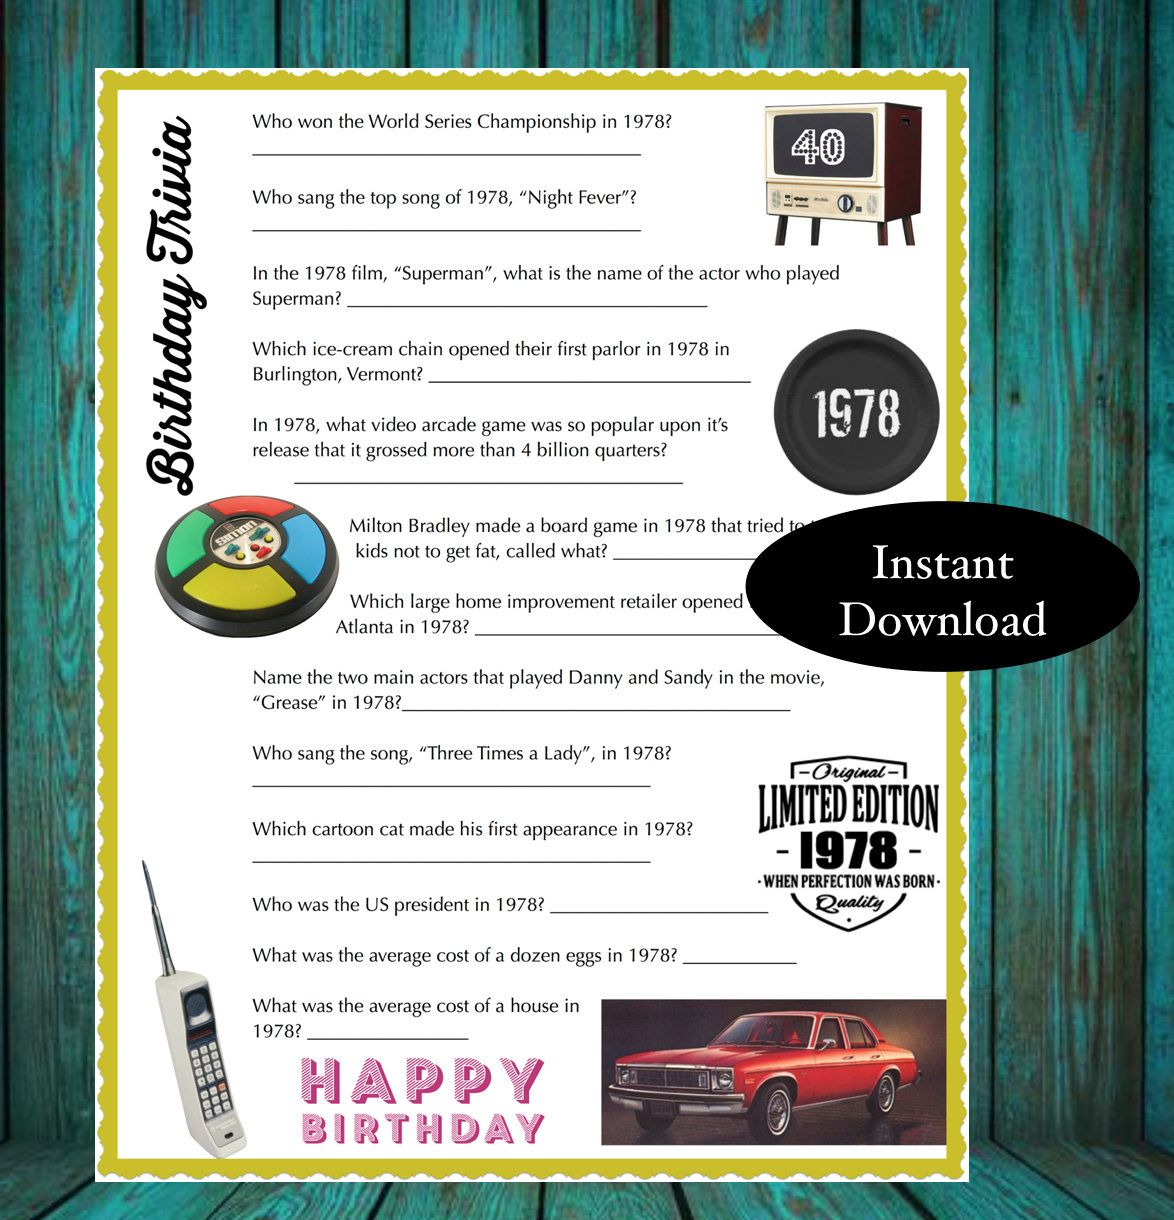 1978 Year Birthday Trivia Game Instant Download 40th Birthday